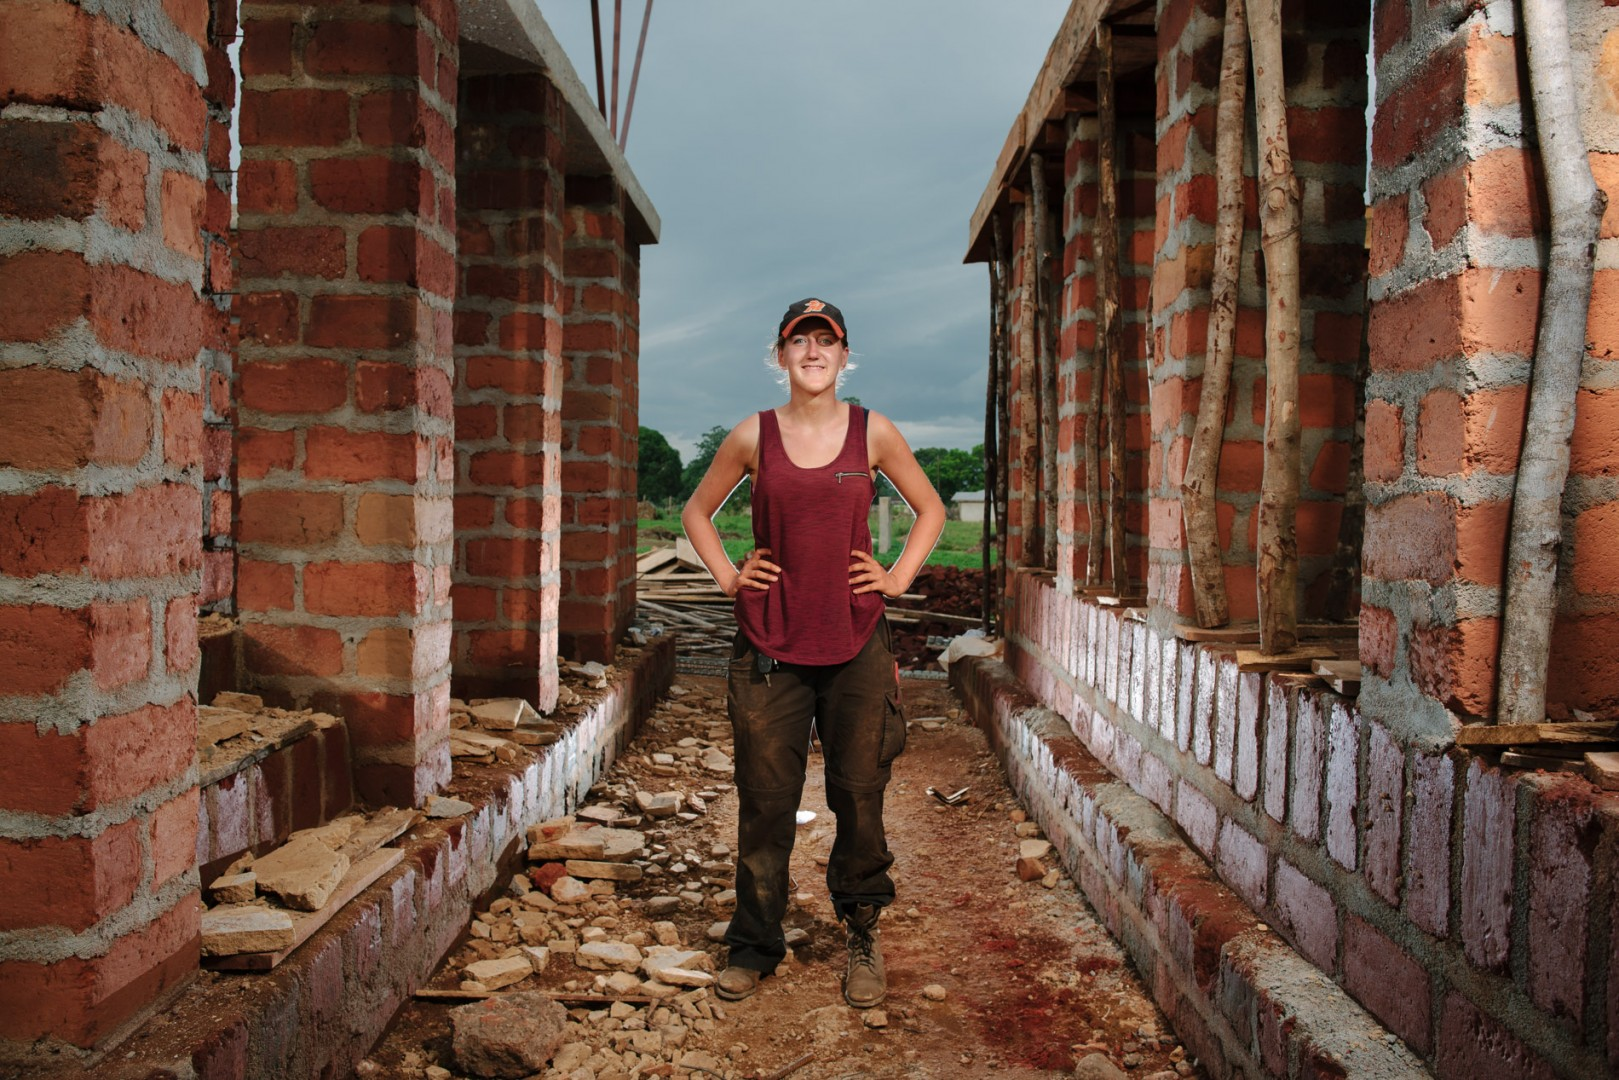 Kirsty Cassels, architect and volunteer with Orkidstudios in the build of the new Swawou School